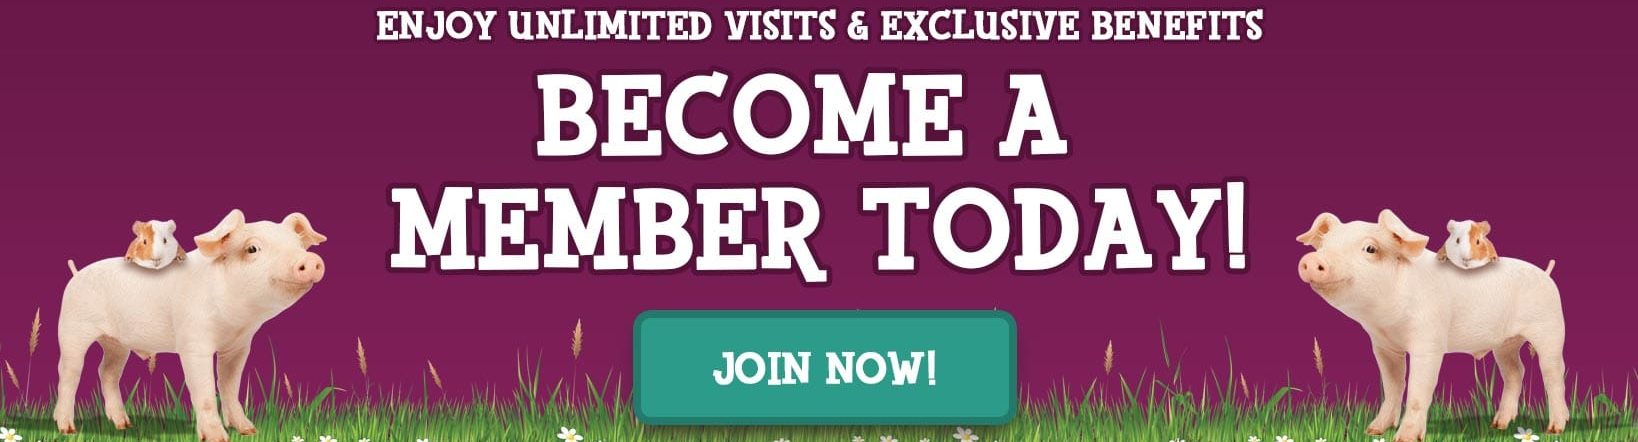 Become a Marsh Farm Member